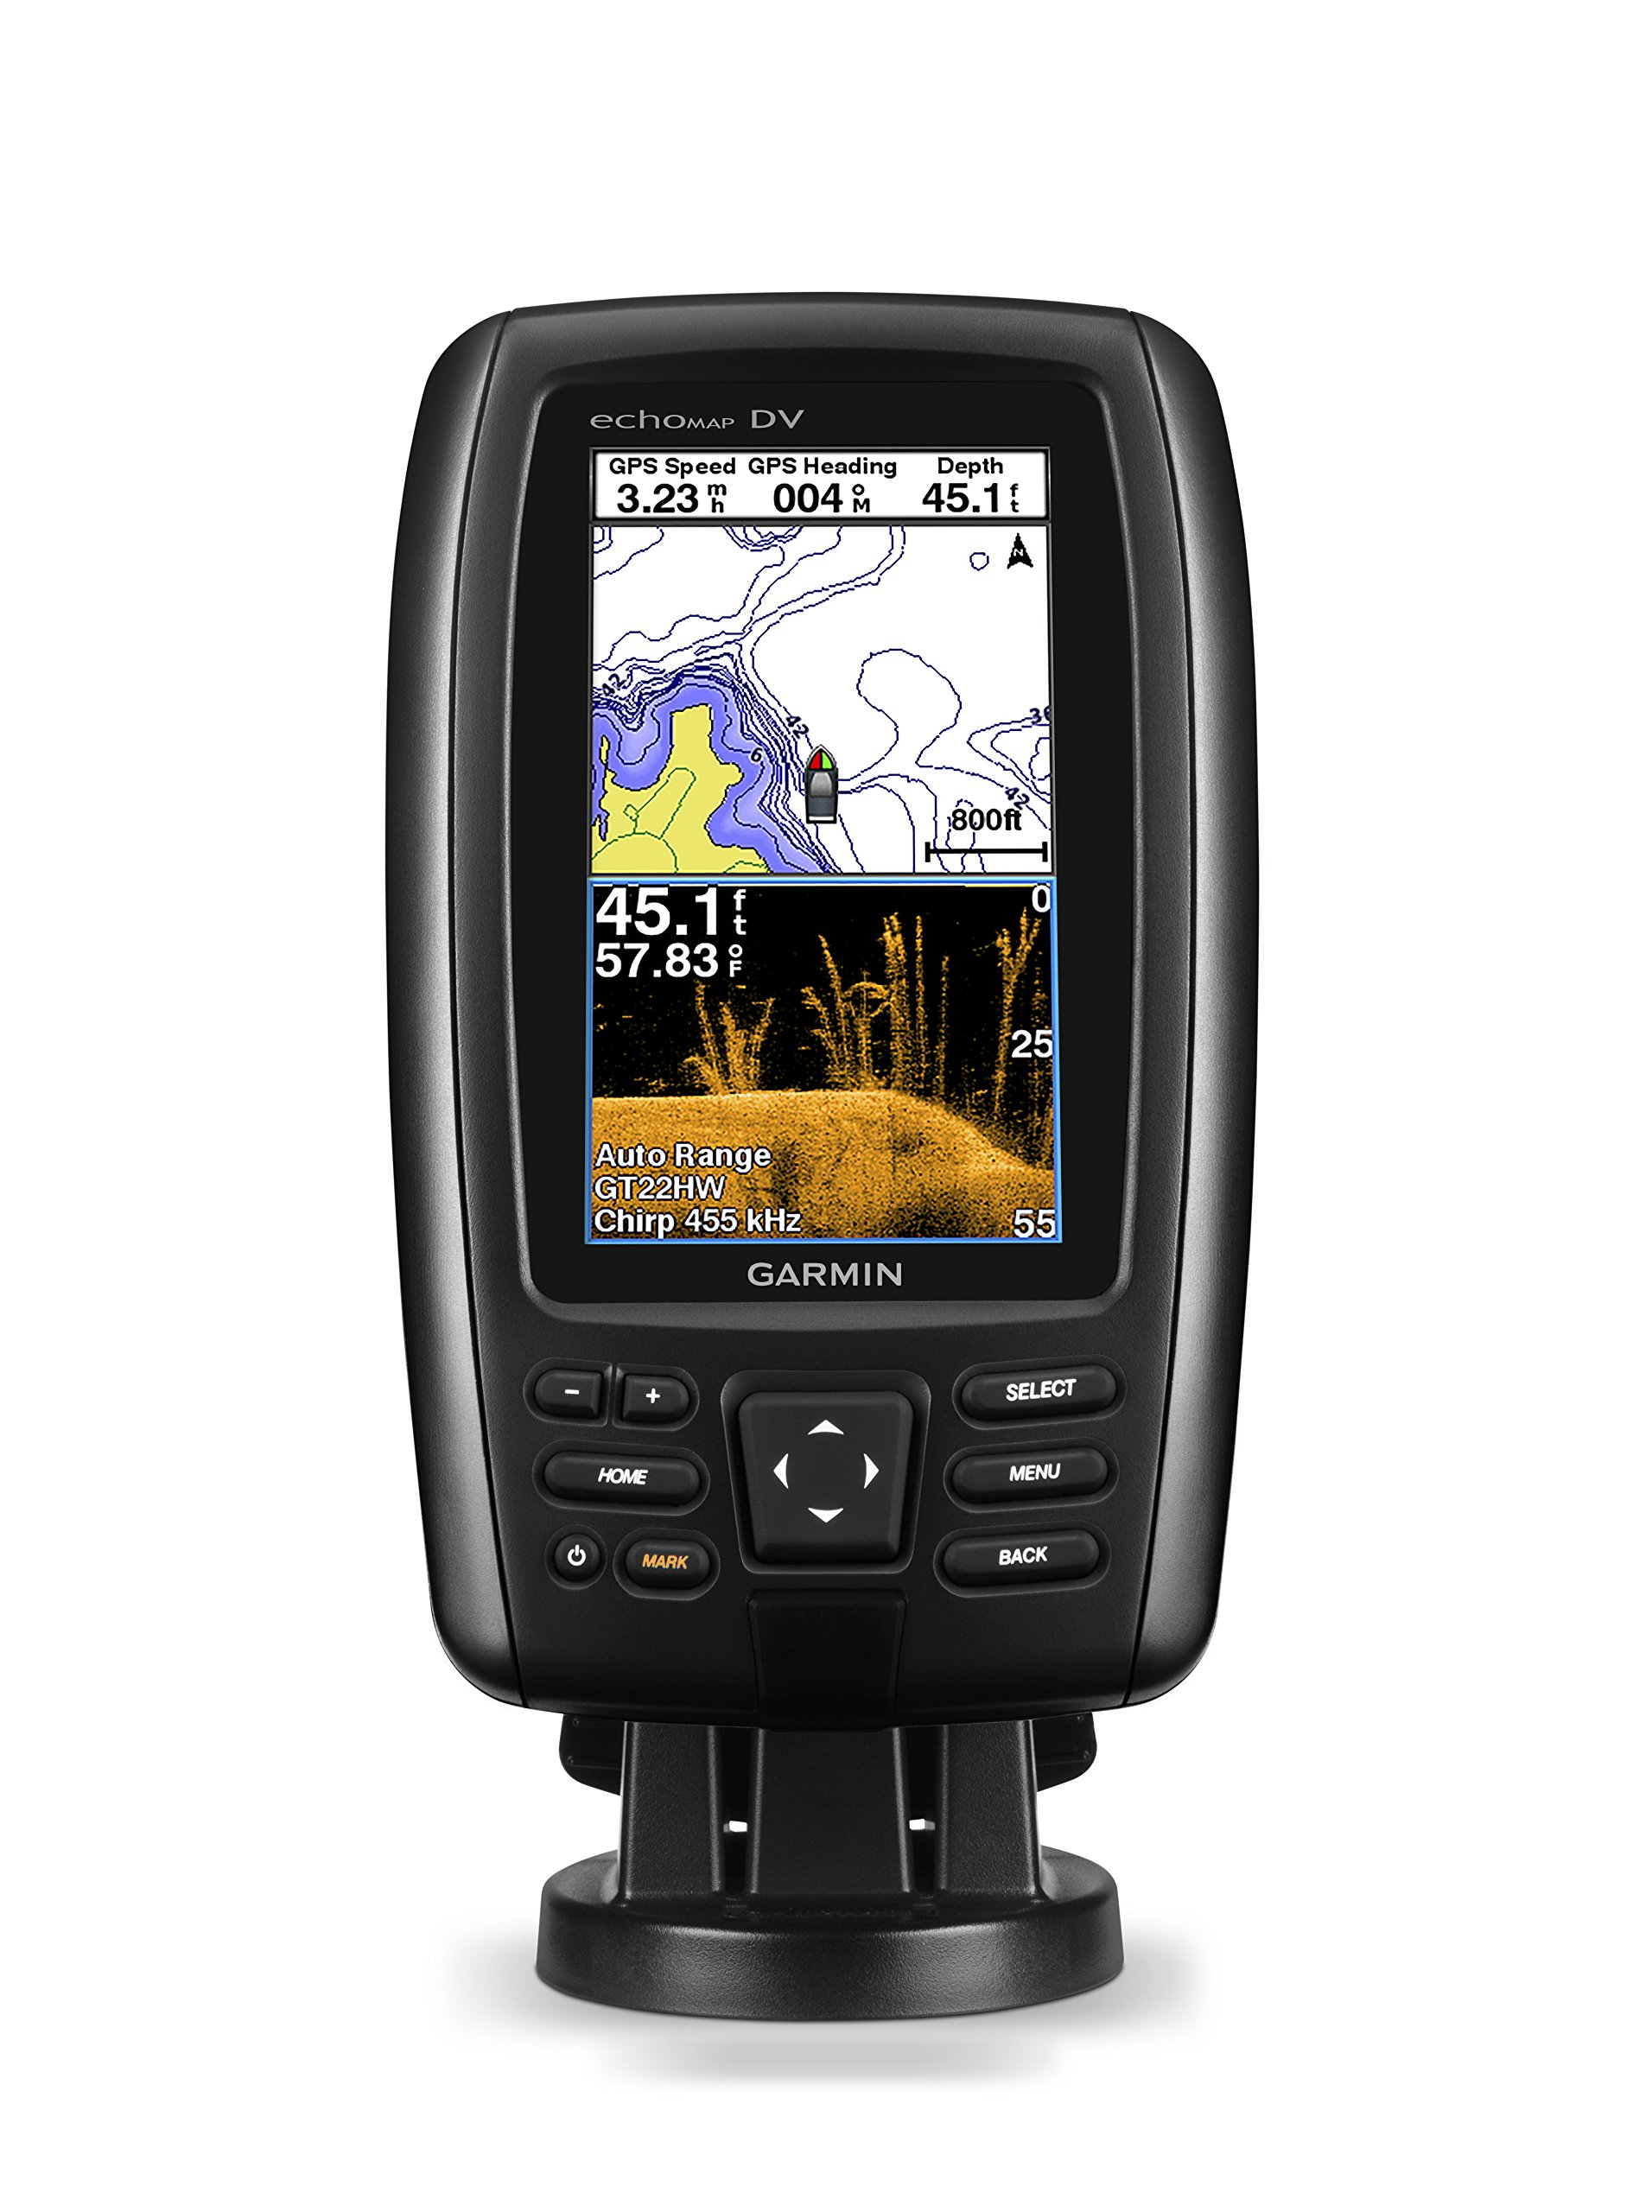 Garmin echoMAP CHIRP 43dv with transducer